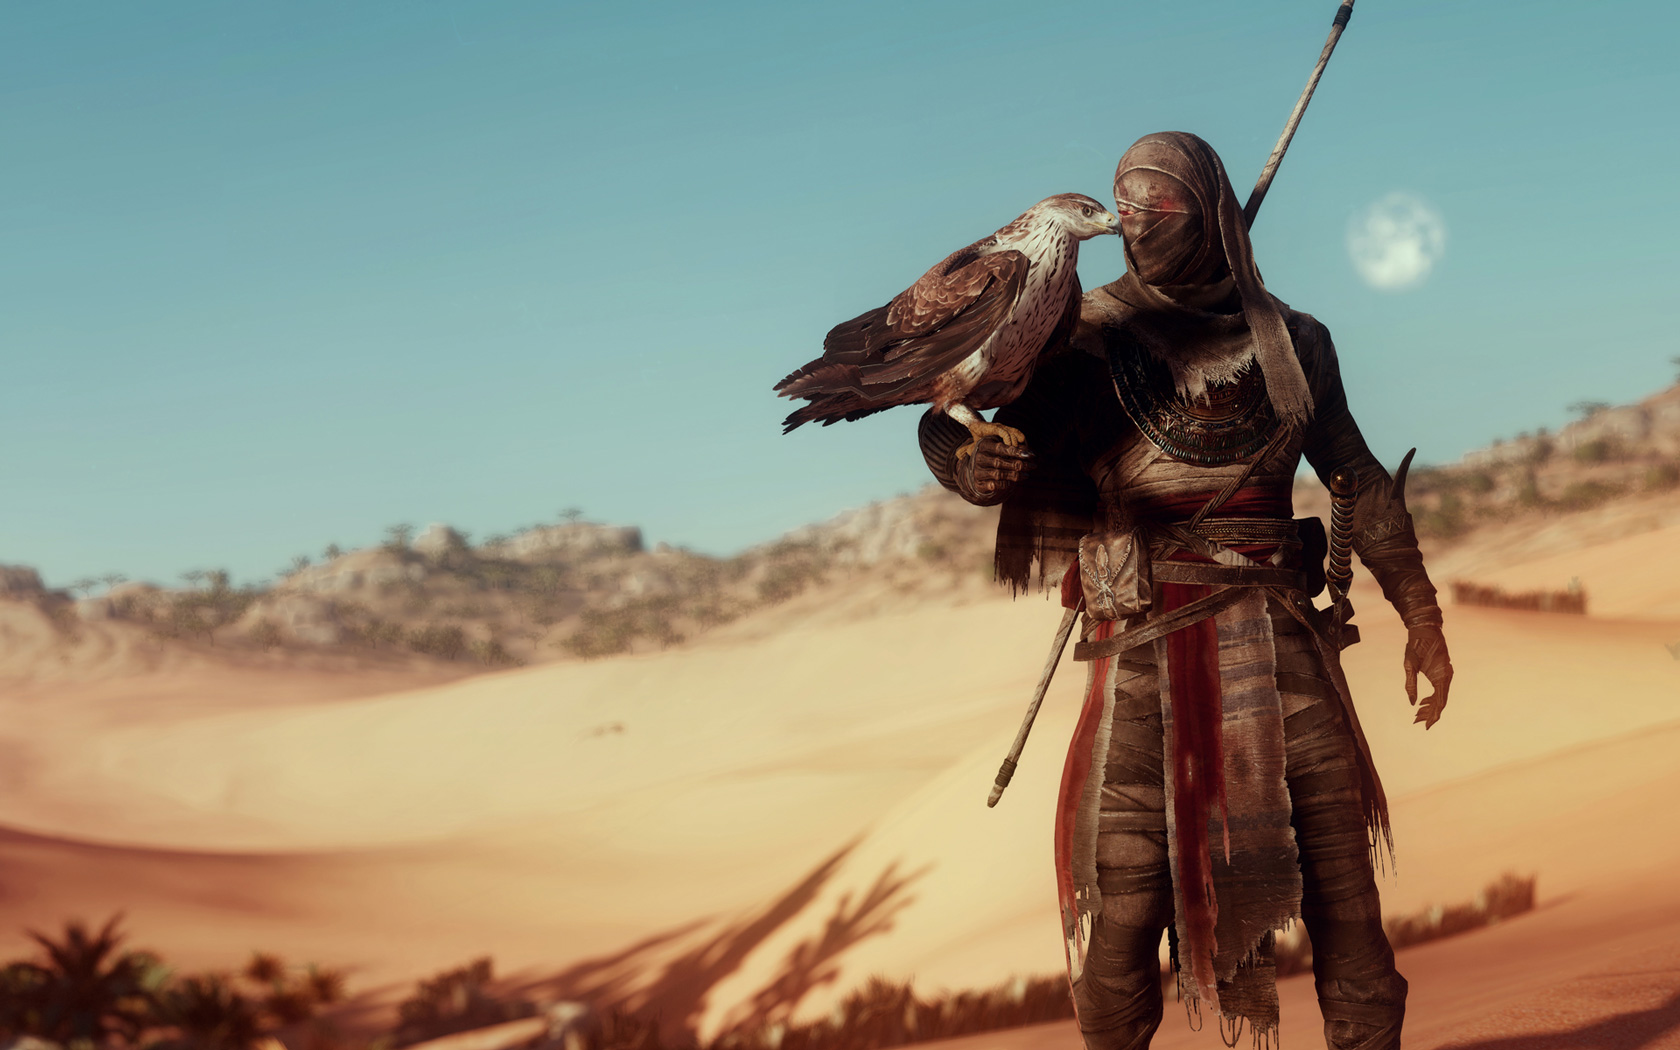 Free Assassin's Creed Origins Wallpaper in 1680x1050